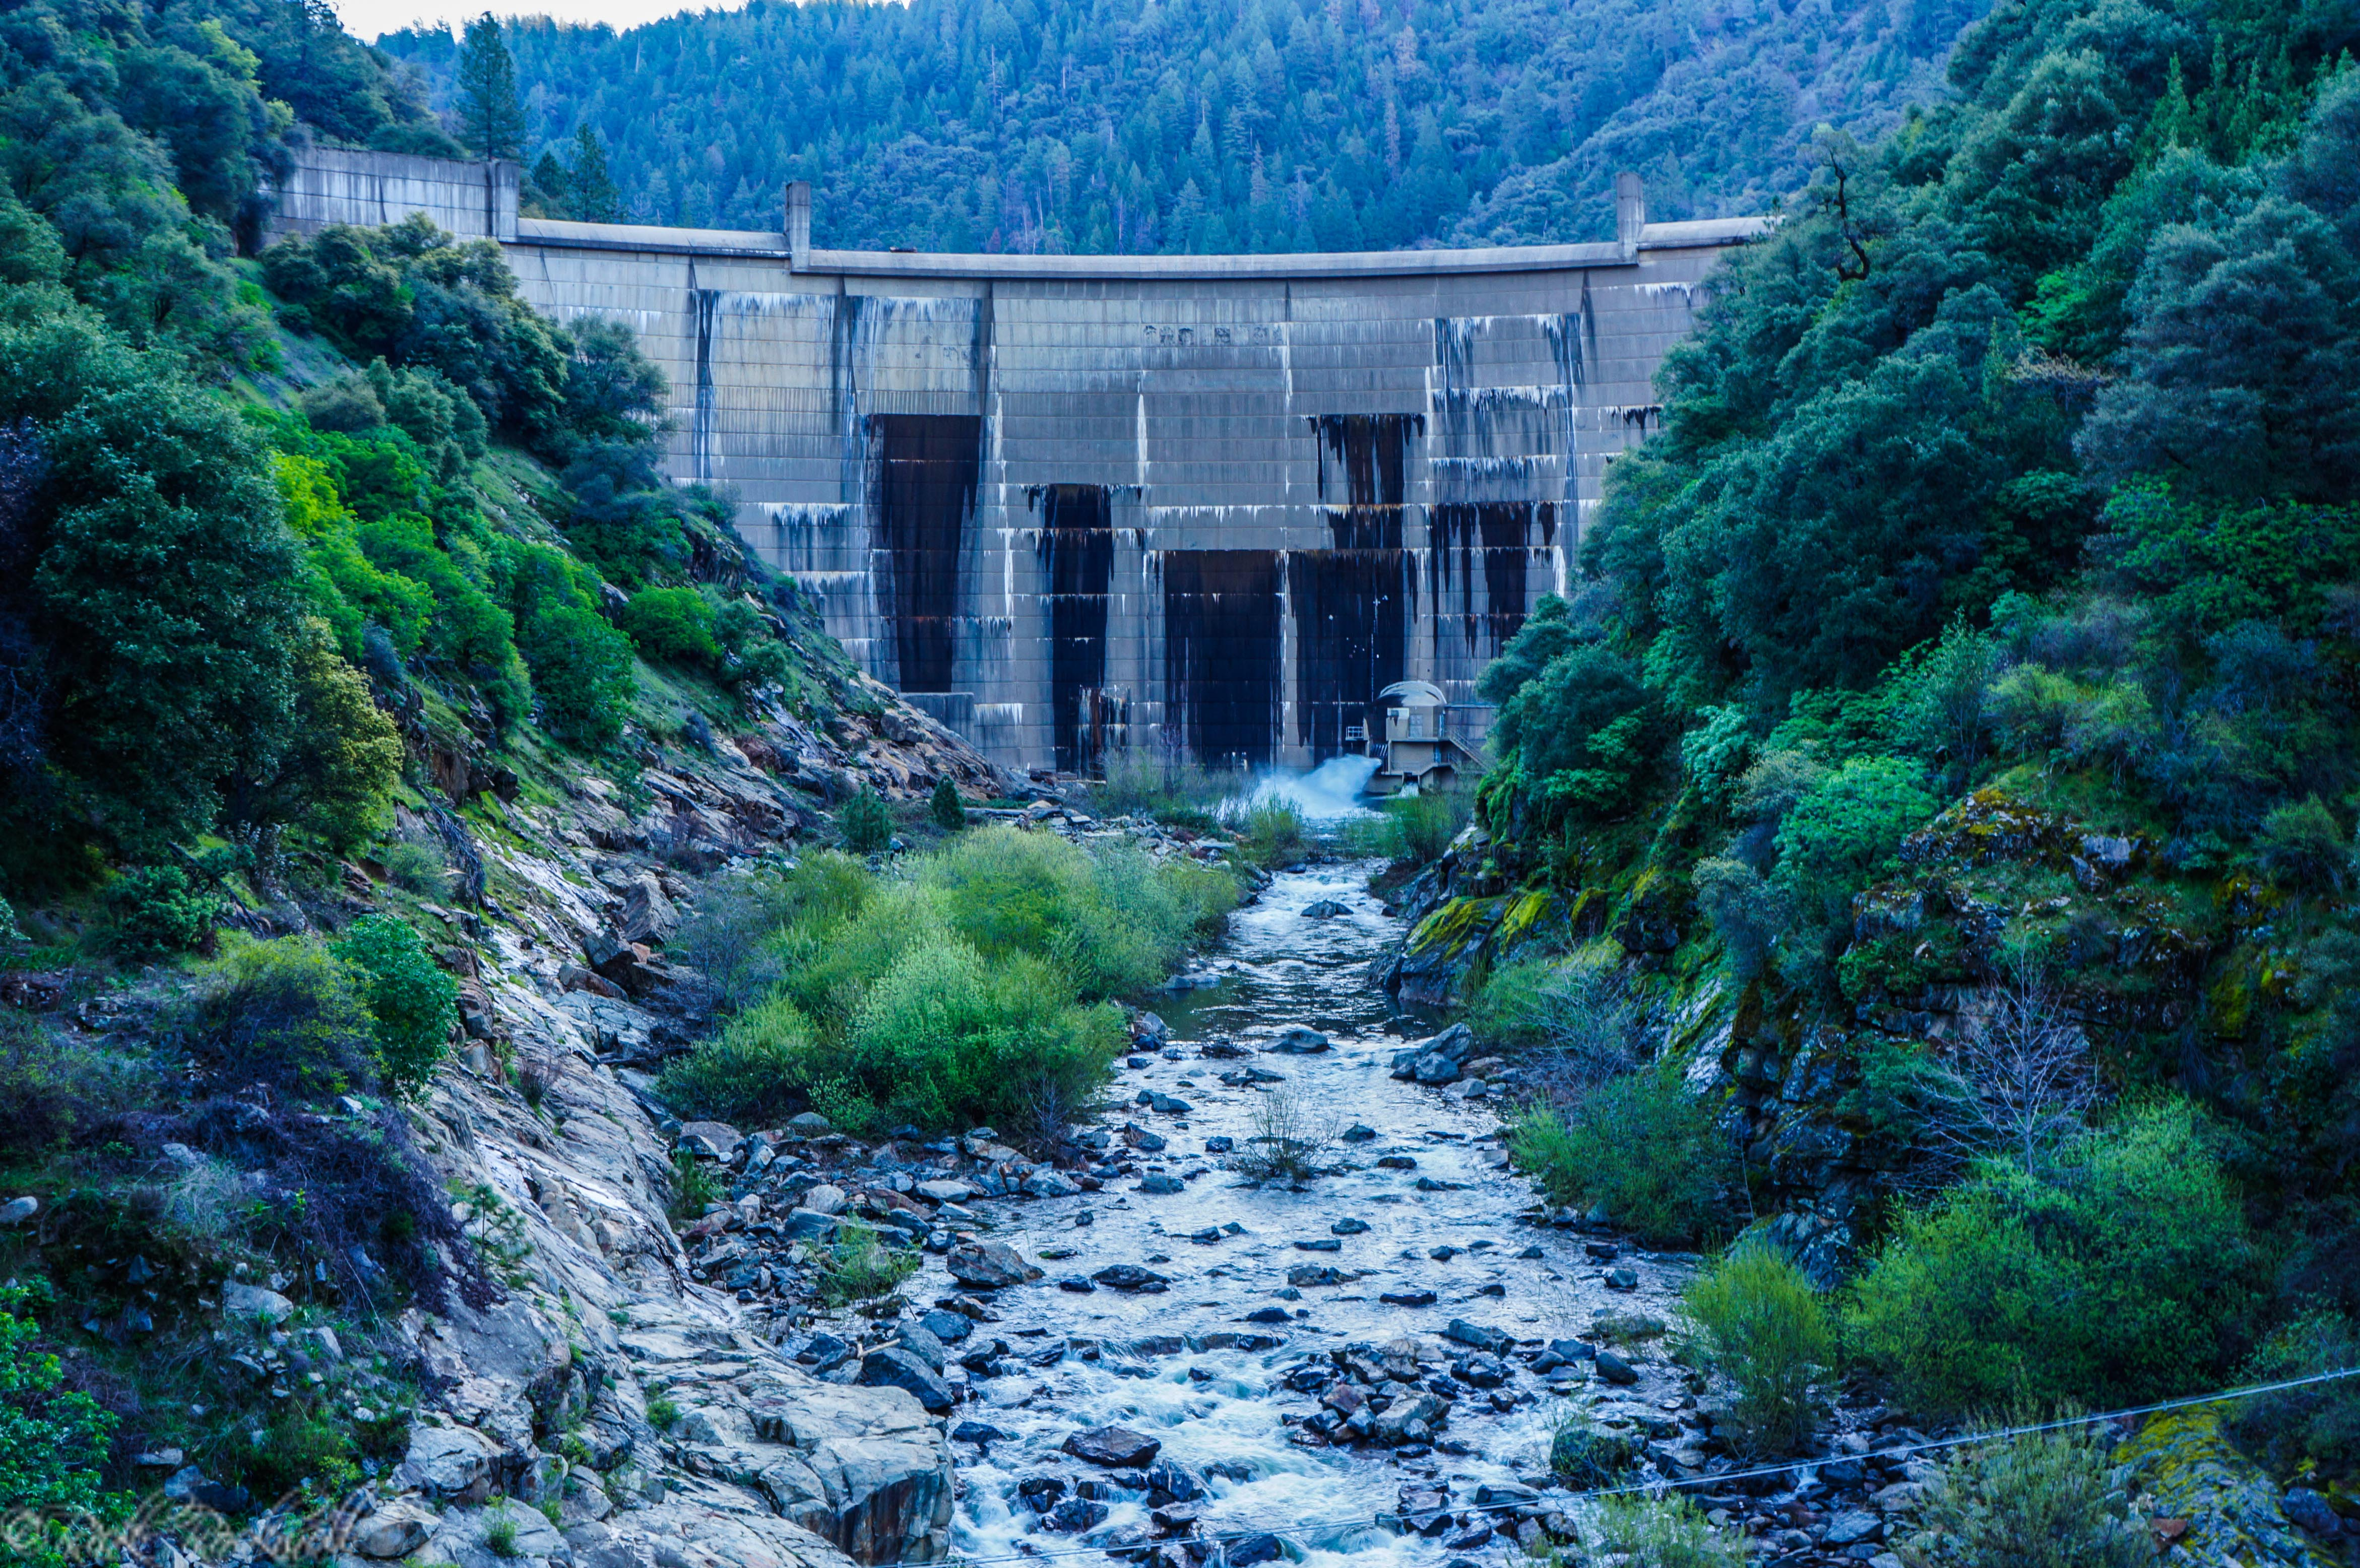 slab creek dam and river (1 of 1)